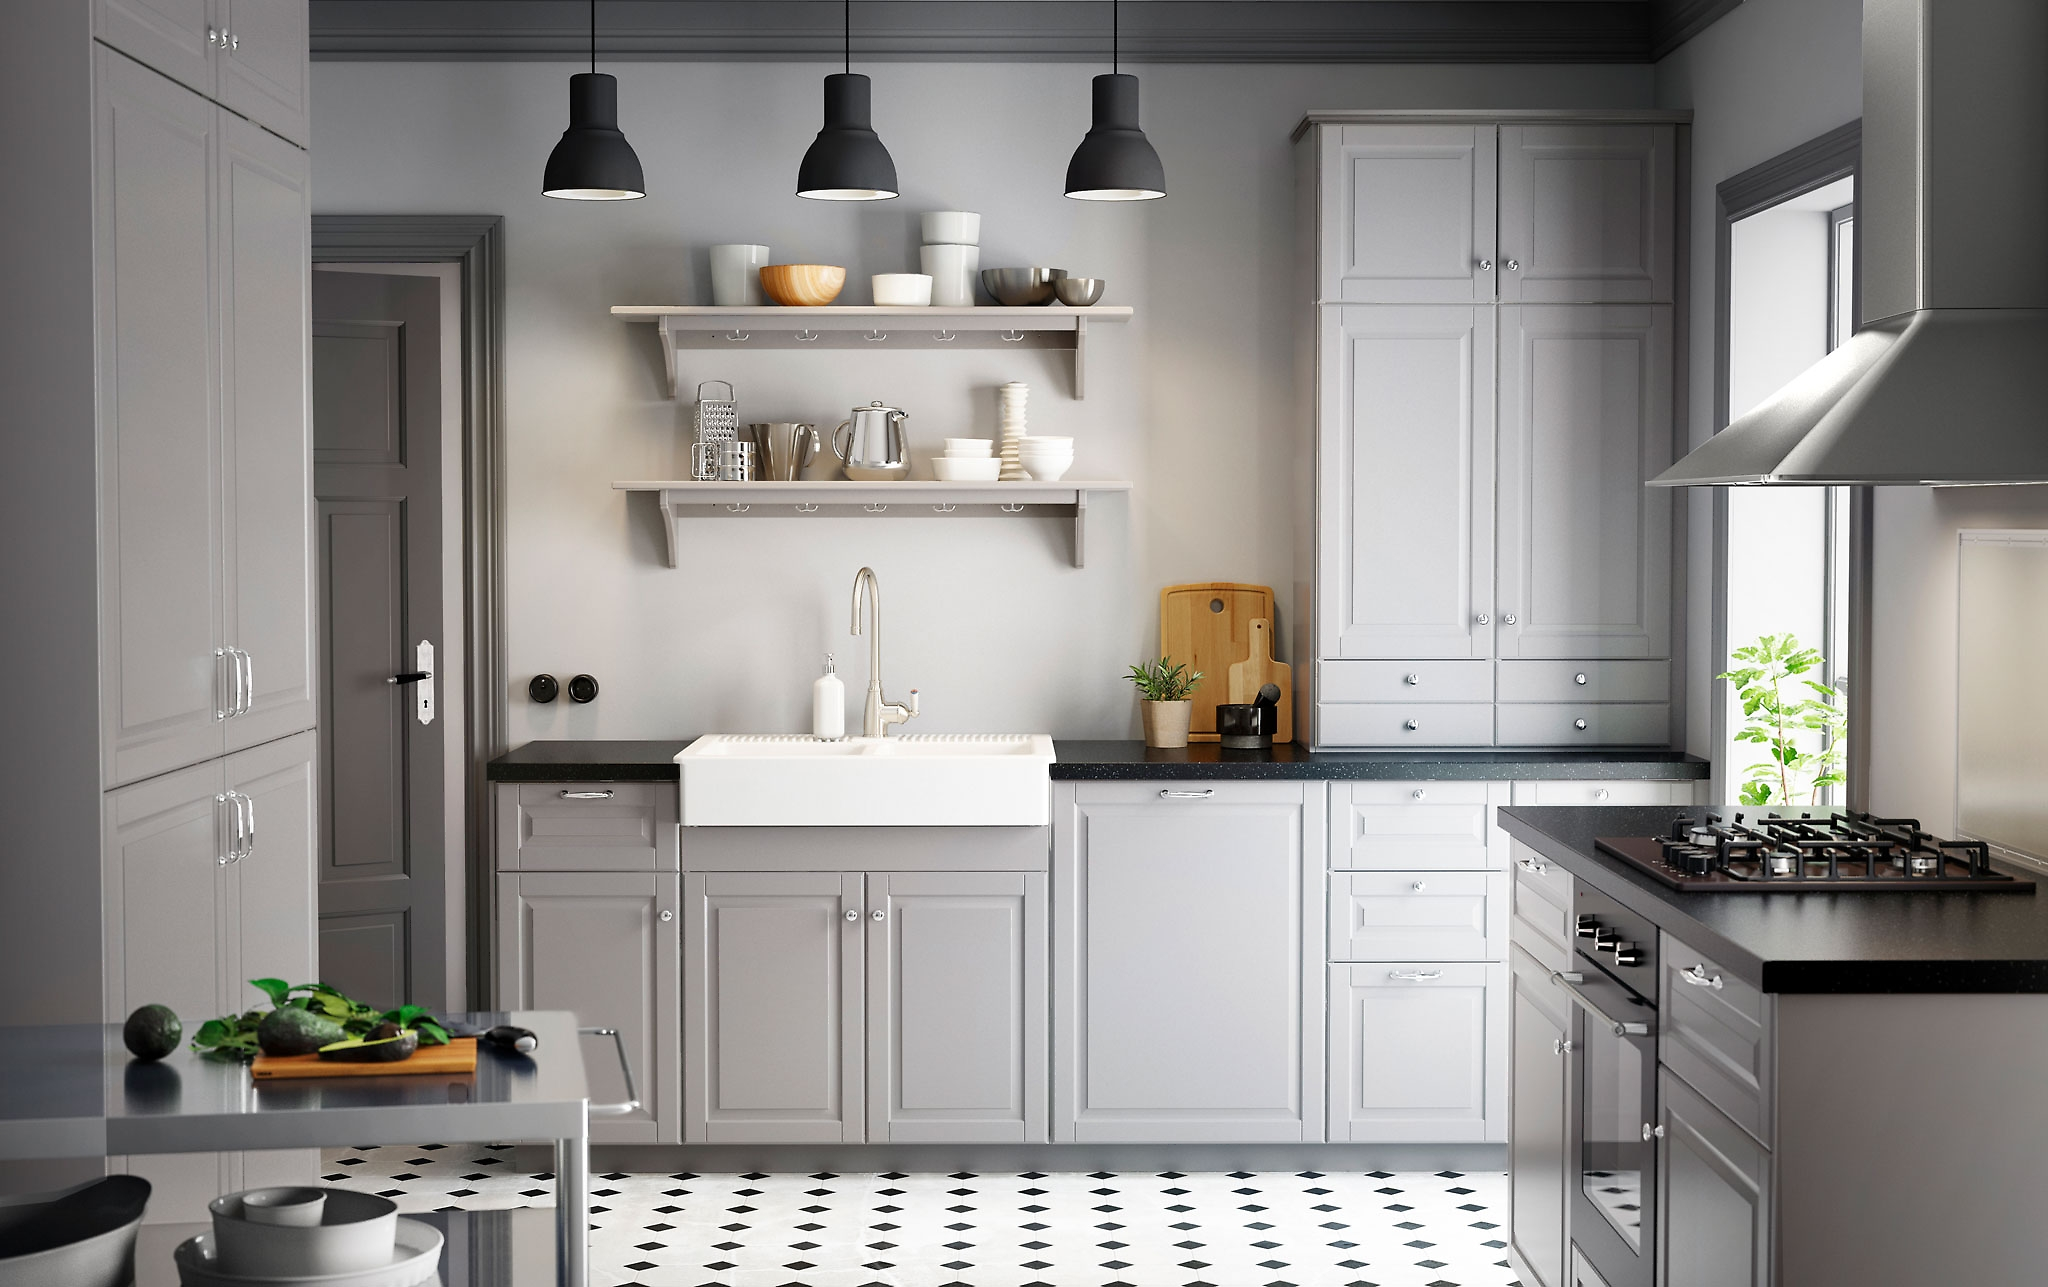 uk-ikea-kitchen-gallery-styling-up-your-kitchens-ideas ...